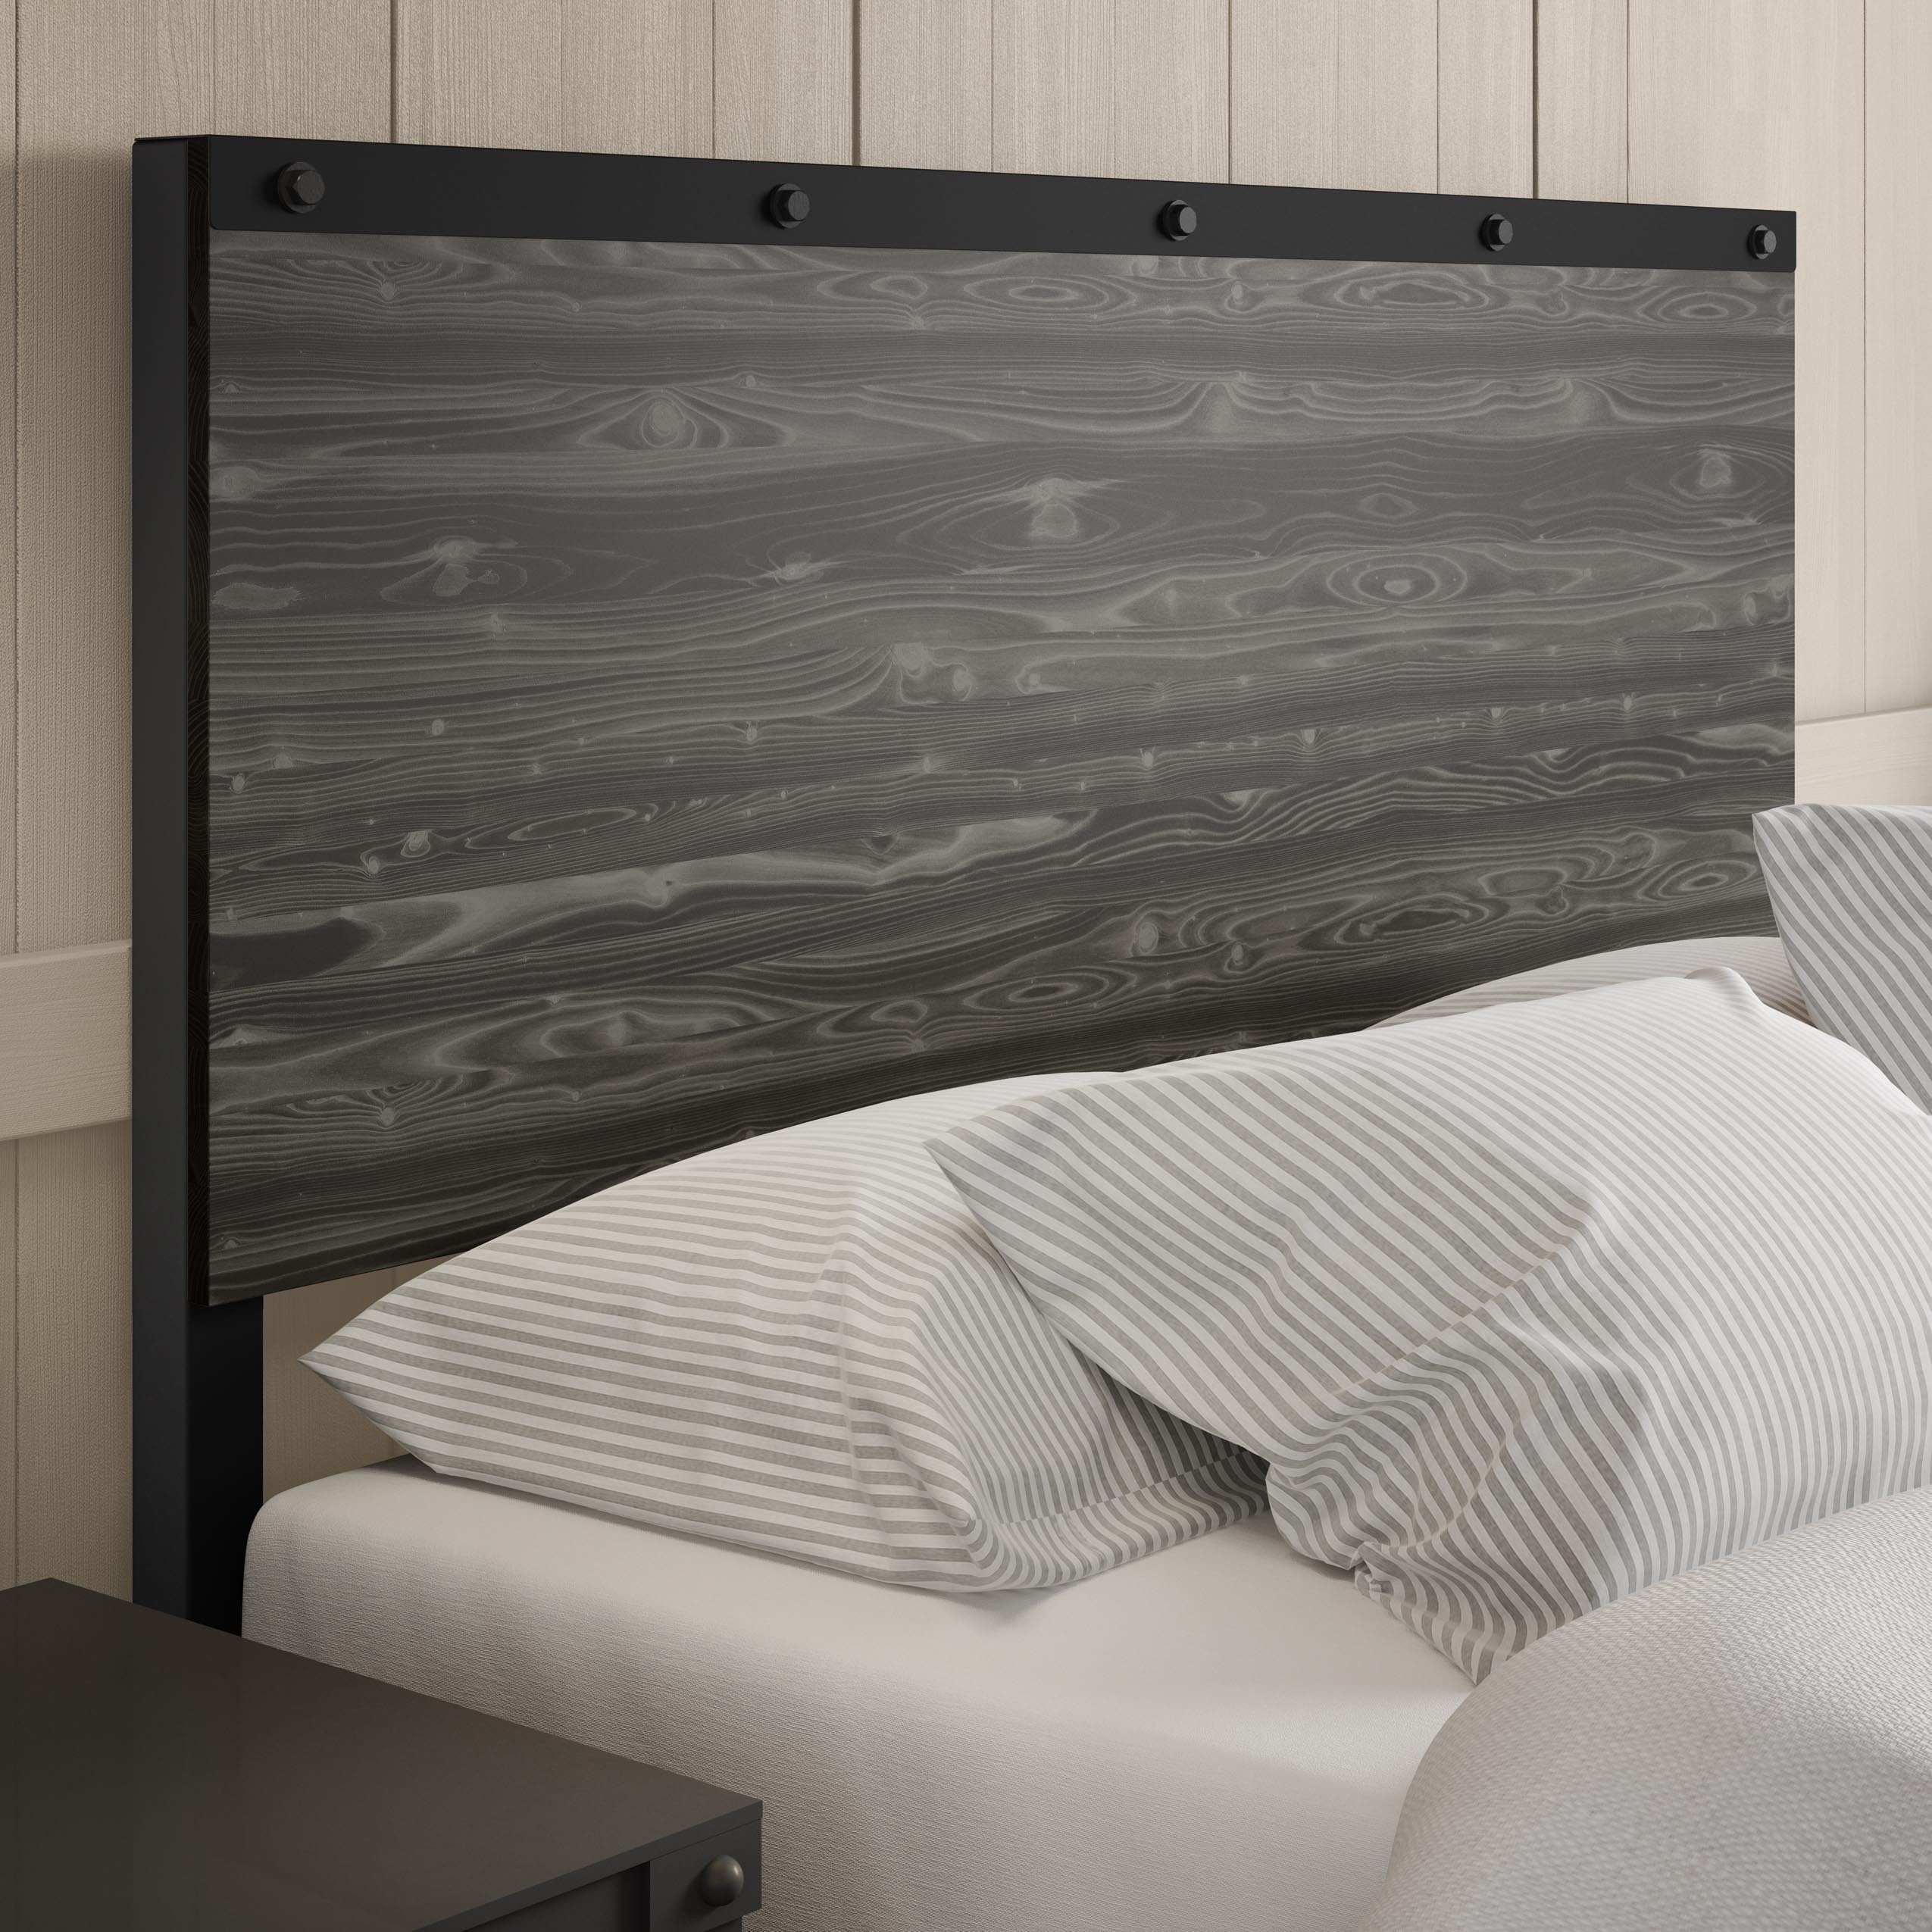 Shop Carbon Loft Teller Full Size Metal Headboard With Wood